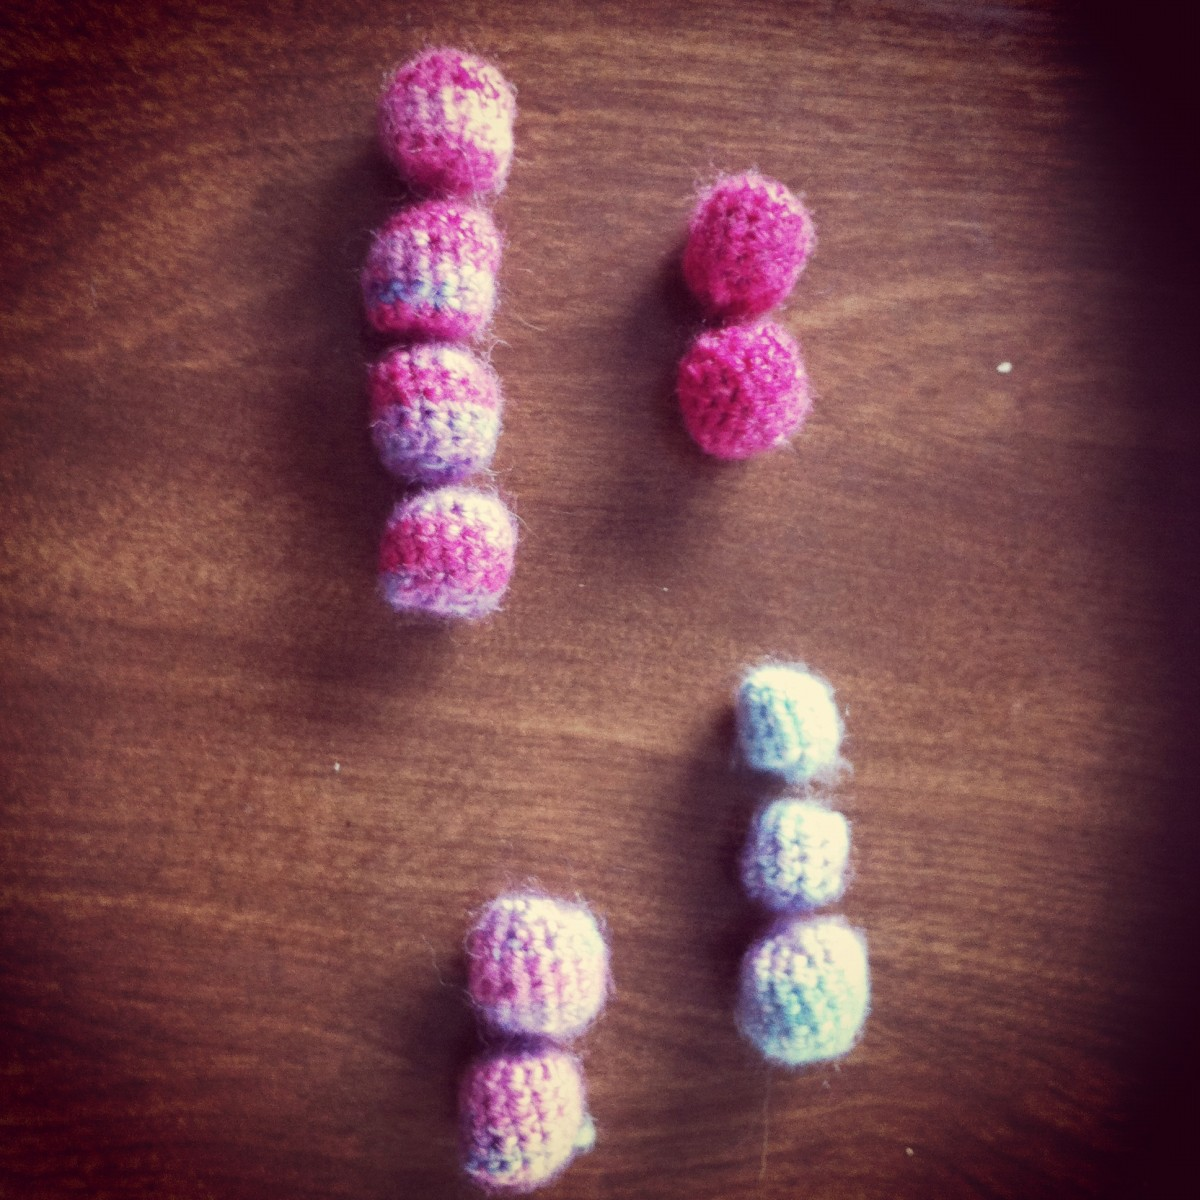 Crocheted beads